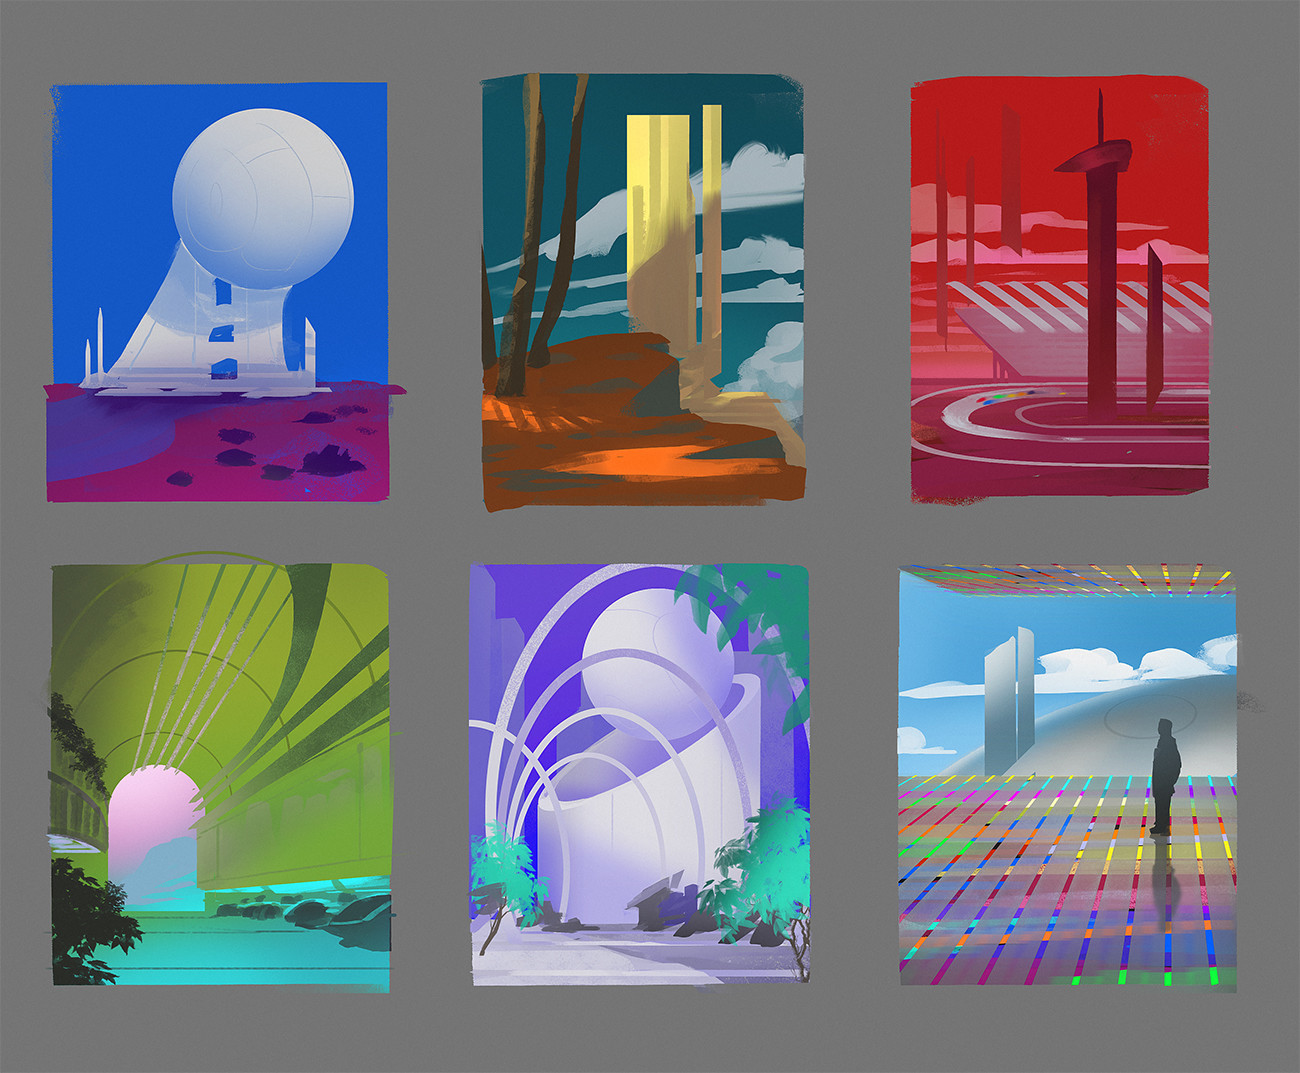 Thumbnails for project Canterbury scifi themed level.